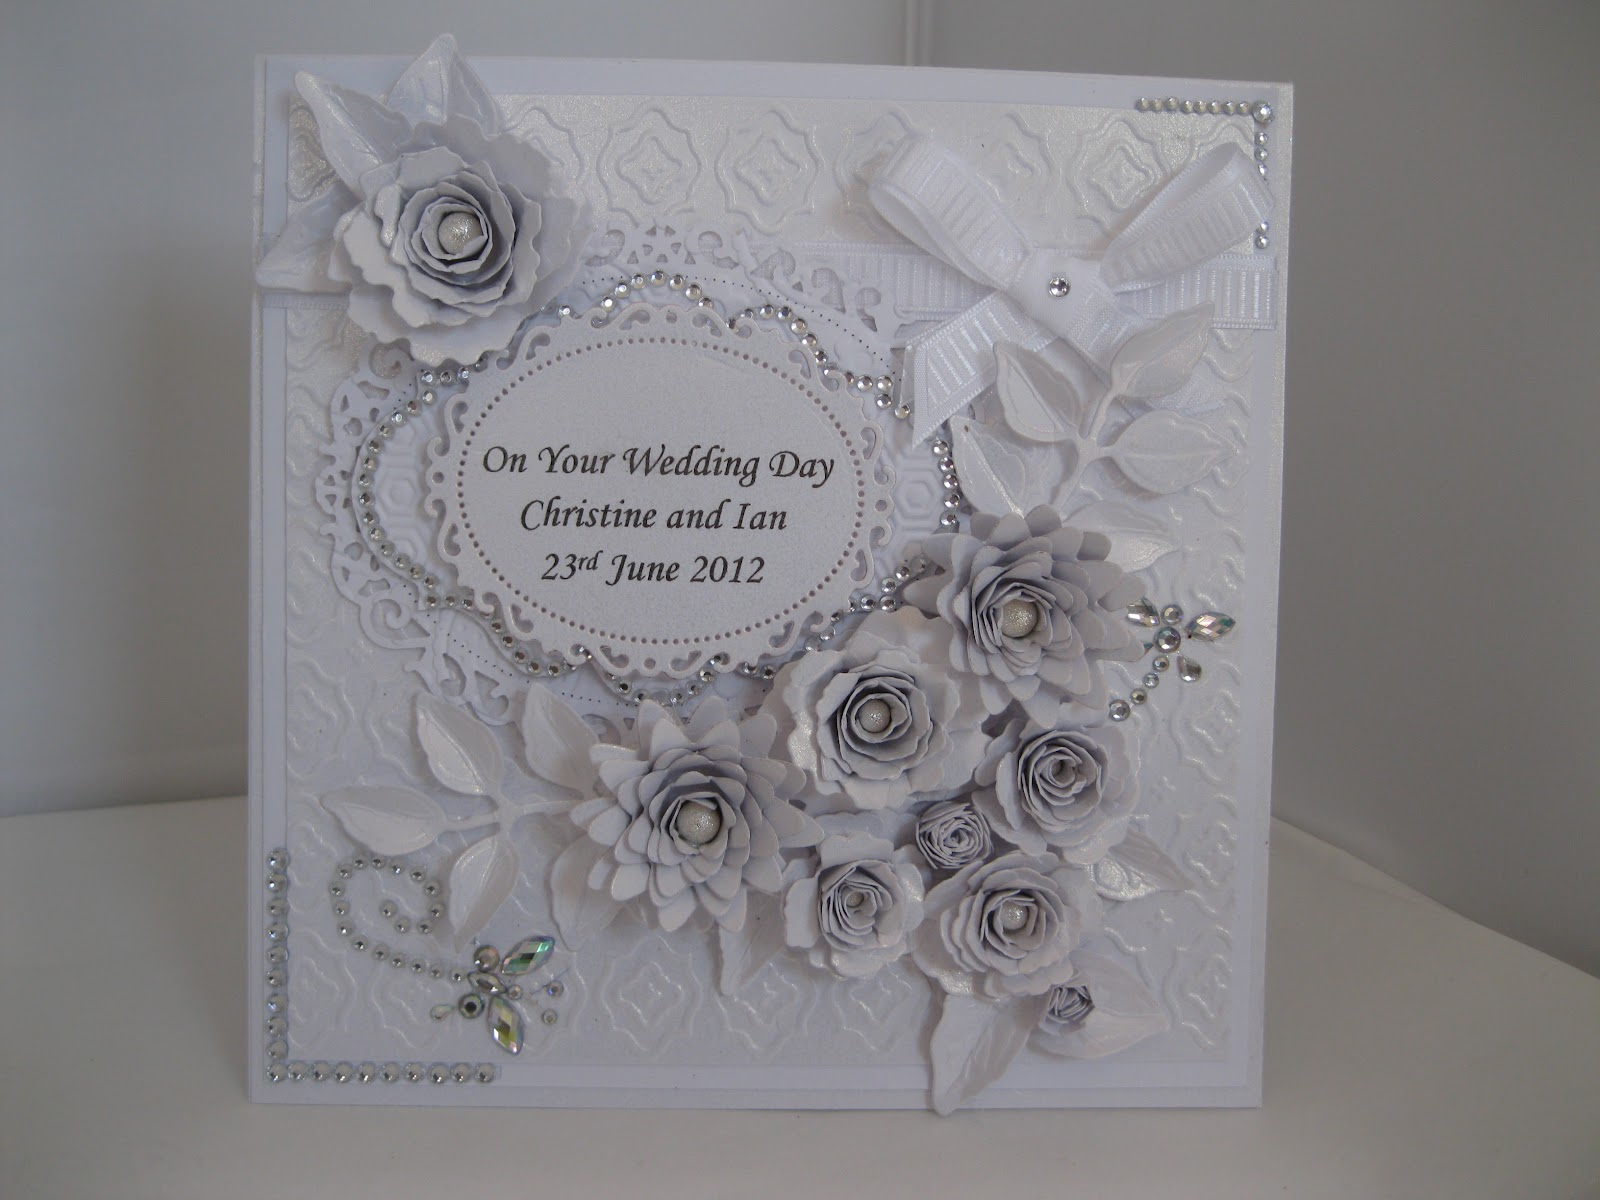 Flowers Ribbons And Pearls Silver And White Wedding Card